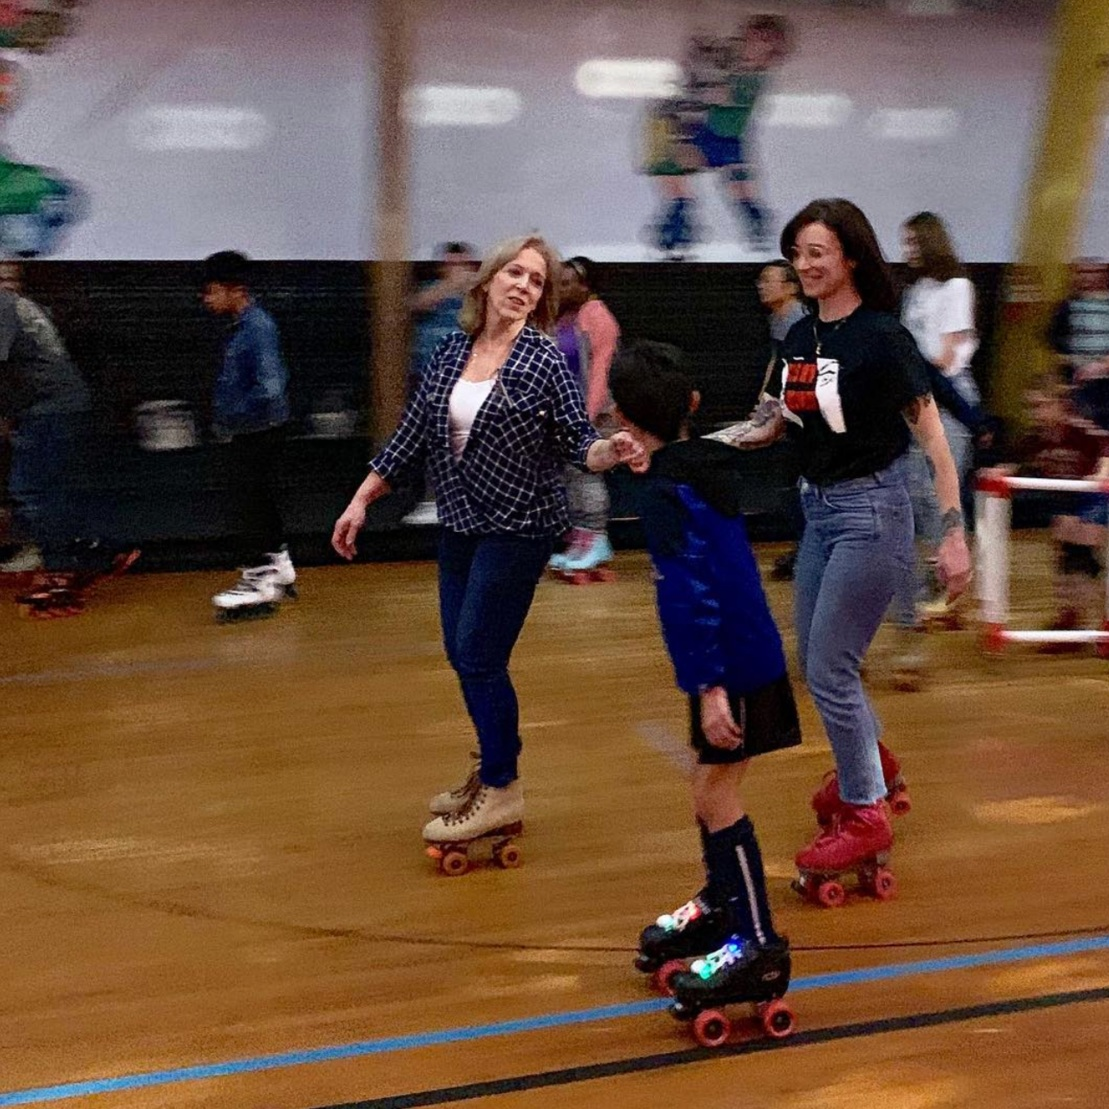 Come skate - Stressed? We are too. Don't forget to take care of yourself. What better way than skating? Come let loose!